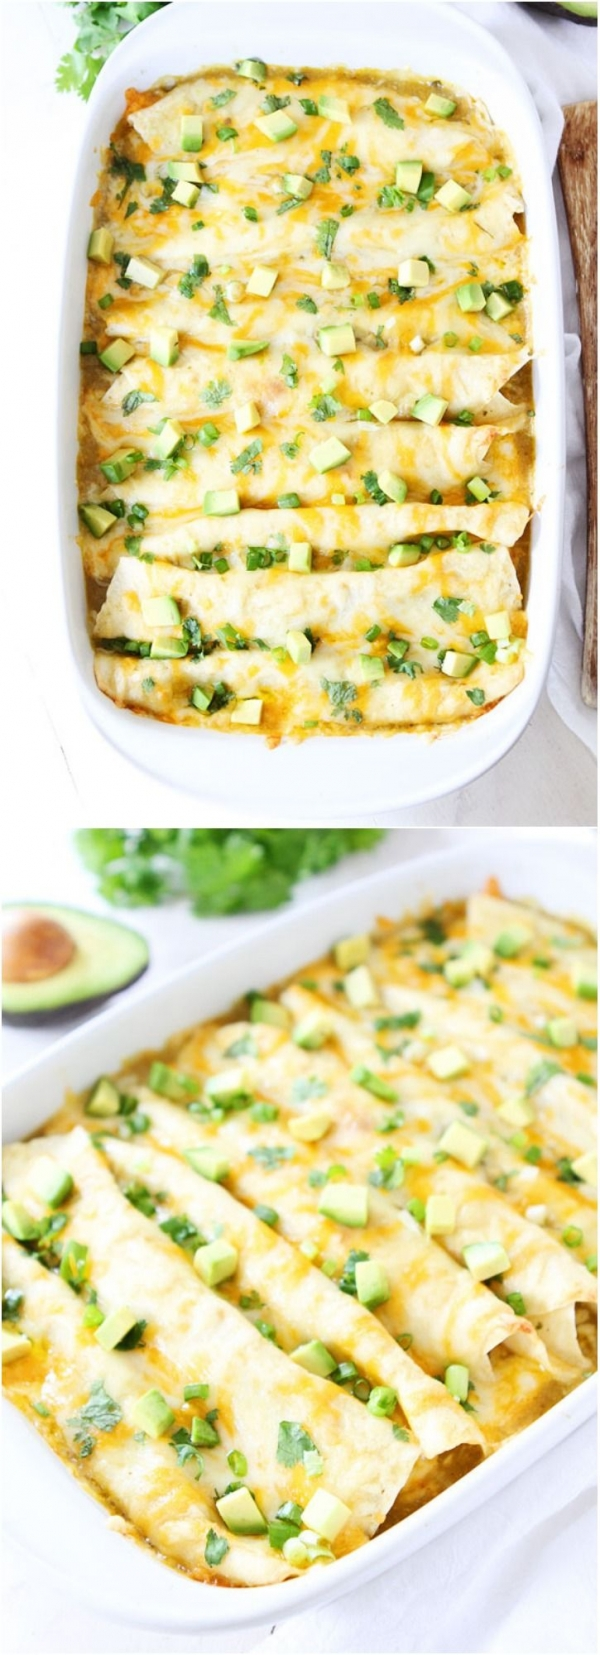 Creamy Spinach and Cheese Green Chile Enchilada